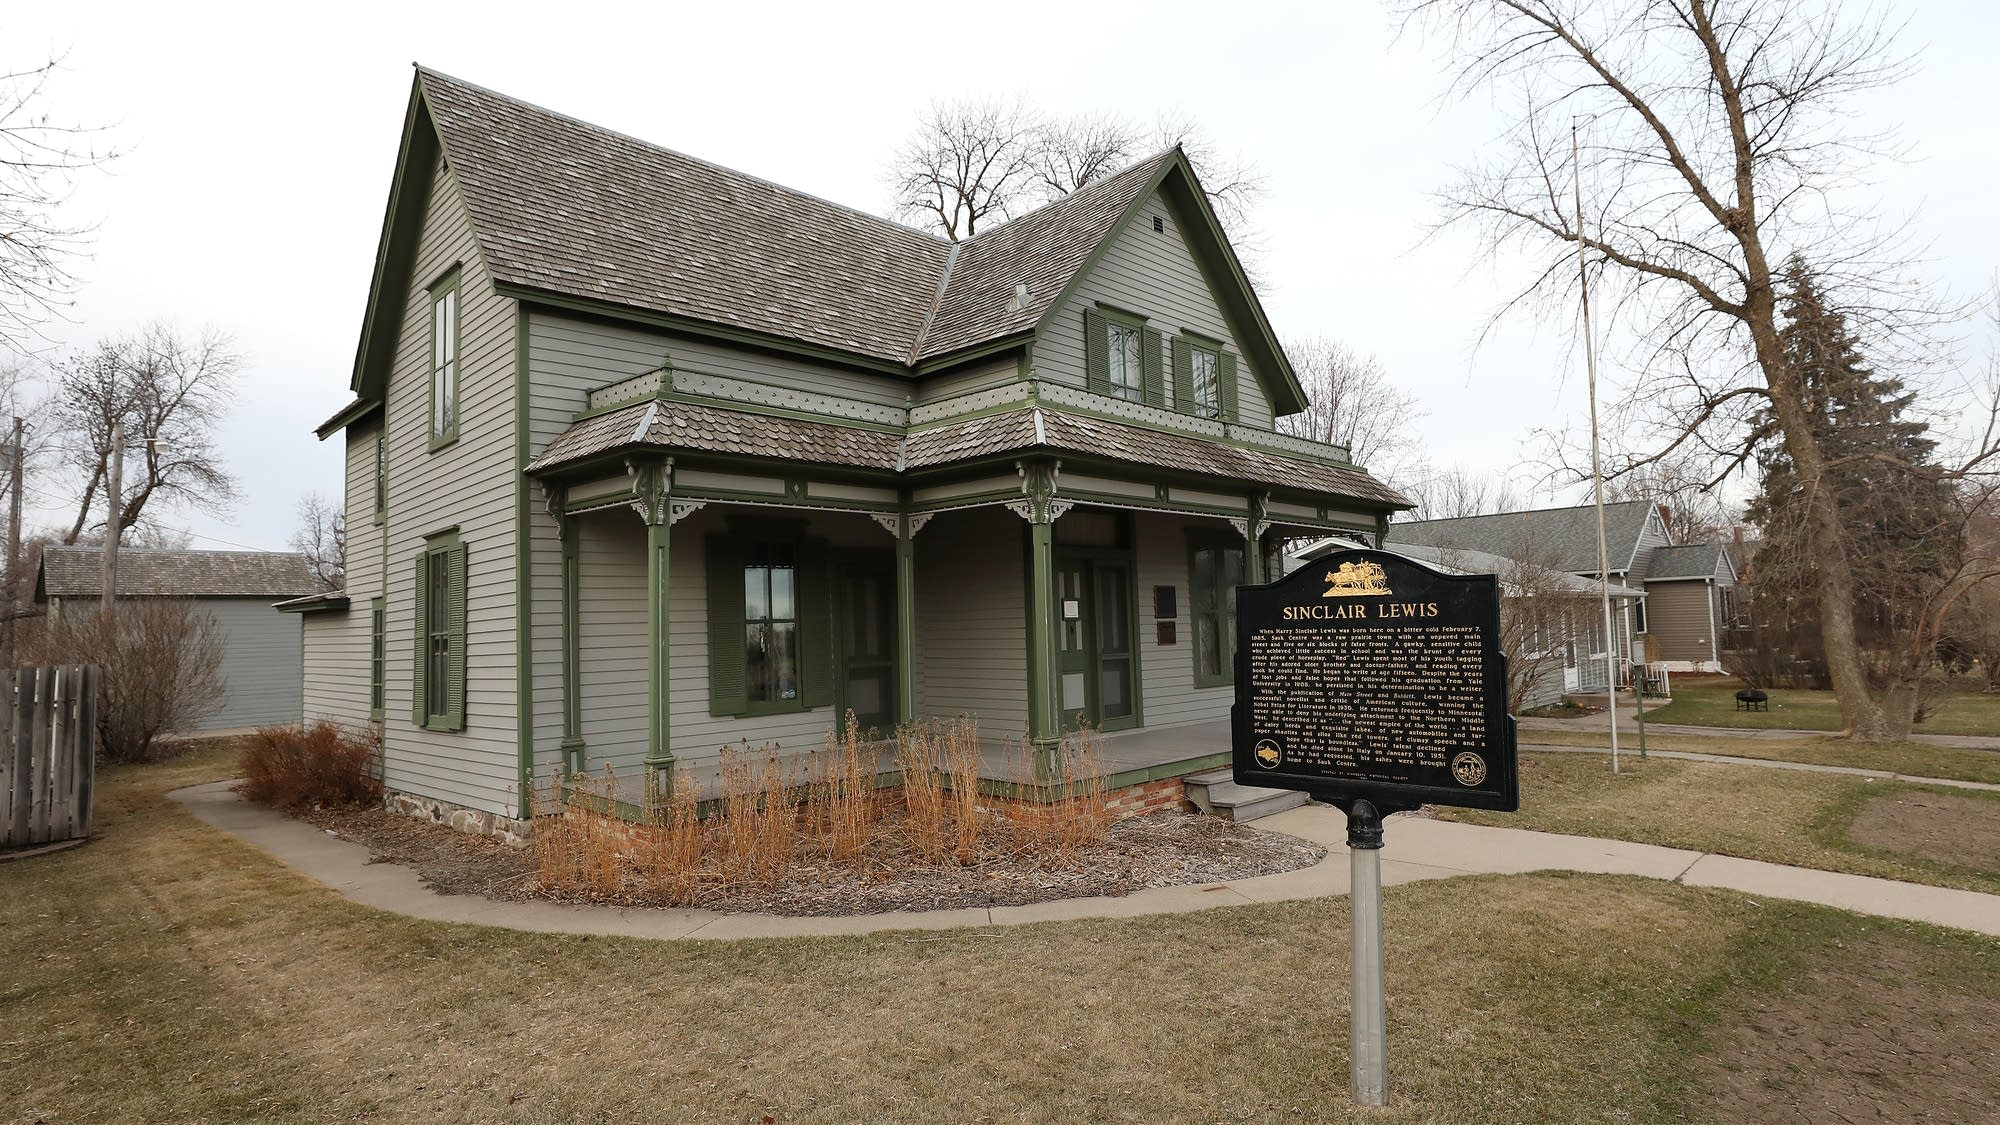 The childhood home of Sinclair Lewis sits just a few blocks off of Main St.